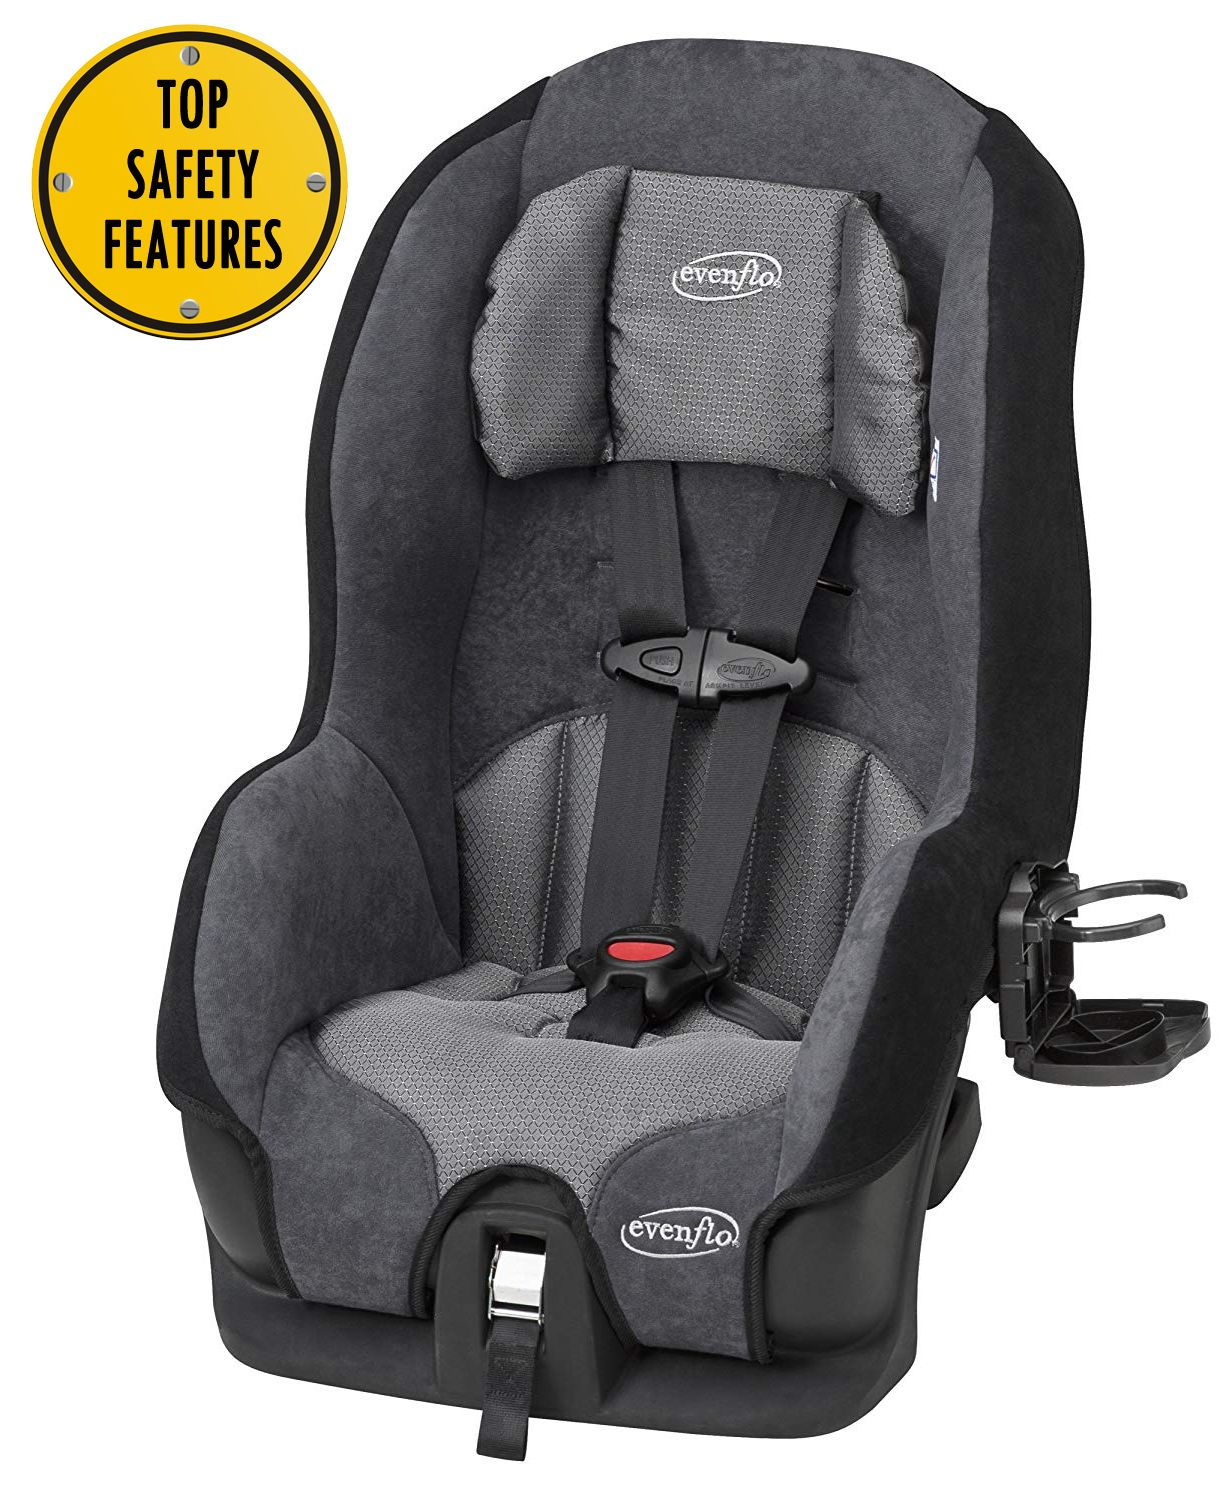 Evenflo Tribute LX Convertible Car Seat Review Evenflo